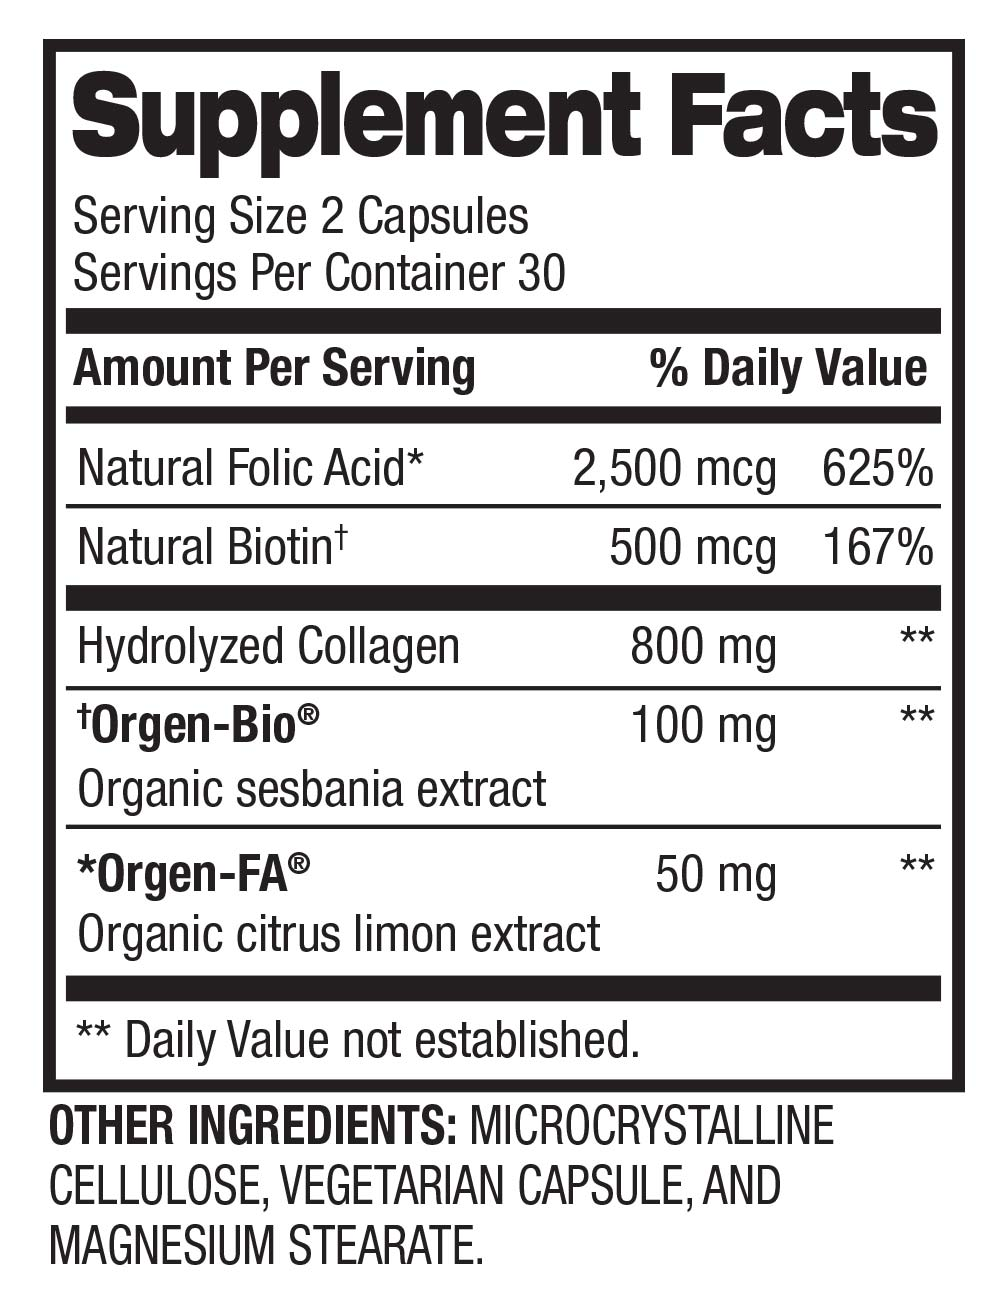 Hair, Skin, & Nails - Collagen & Biotin (30 Servings) Supplement Facts